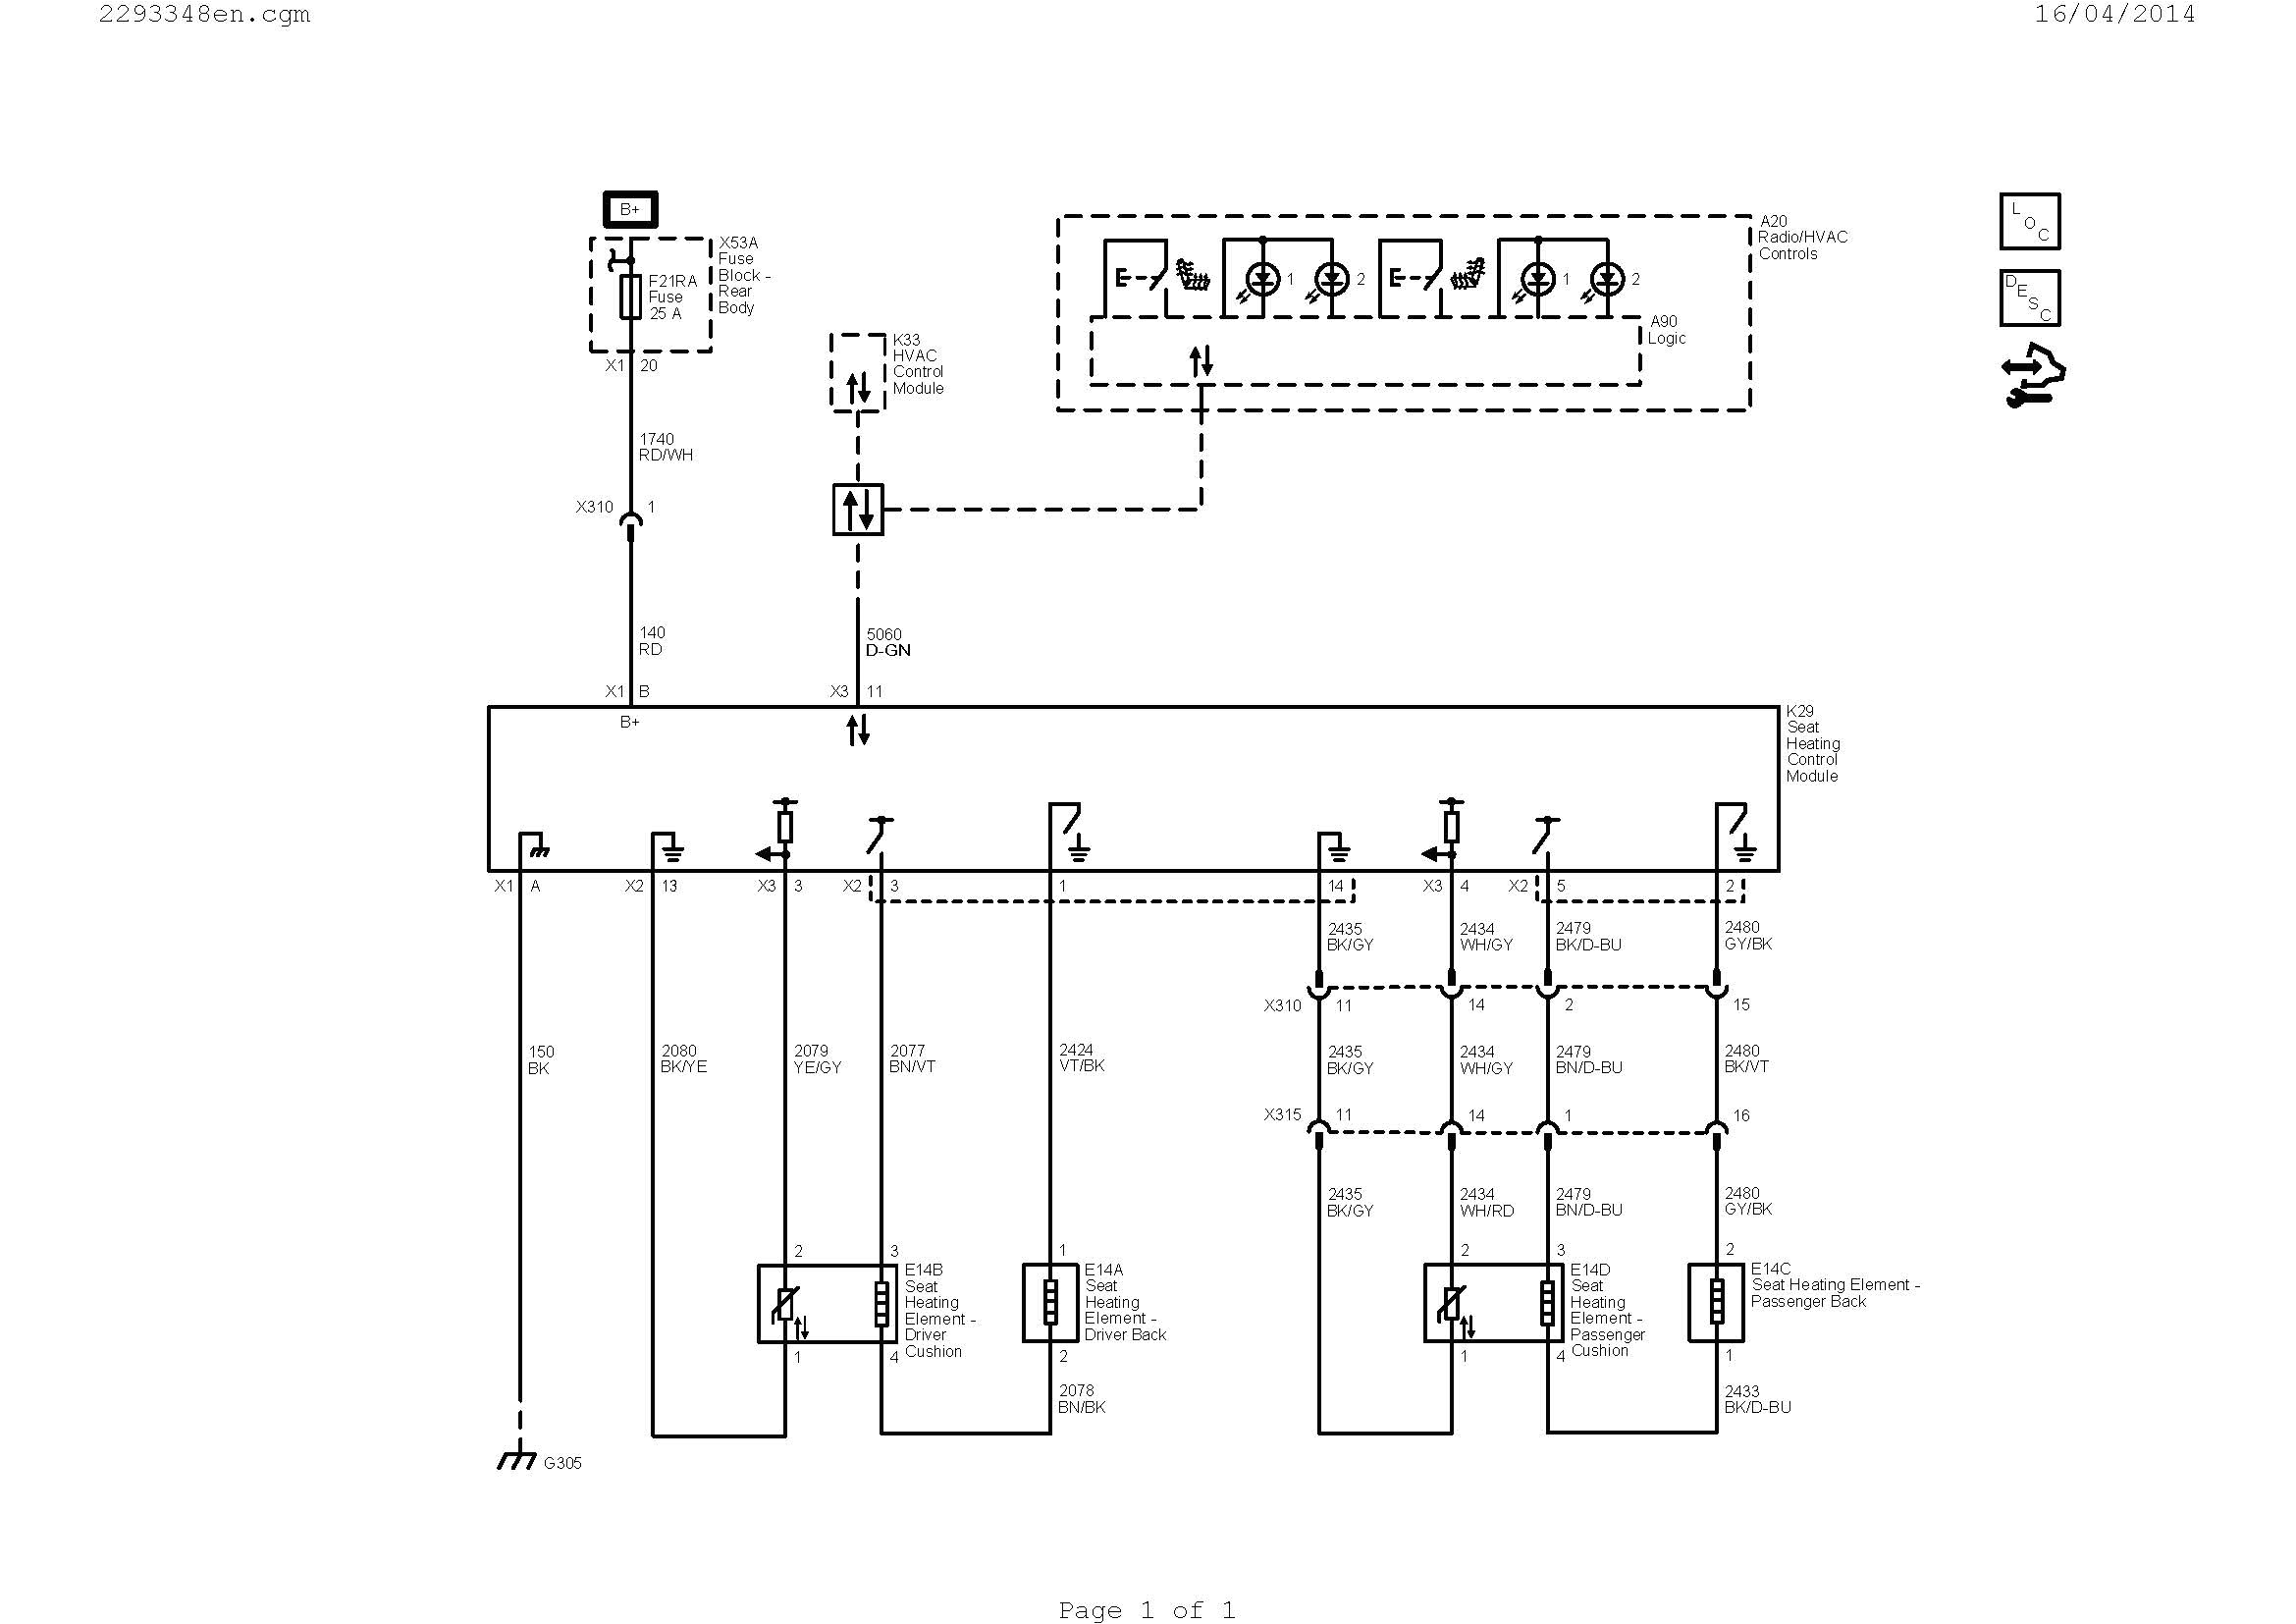 surge protector wiring diagram collection understanding hvac wiring diagrams download diagram websites unique hvac diagram download wiring diagram